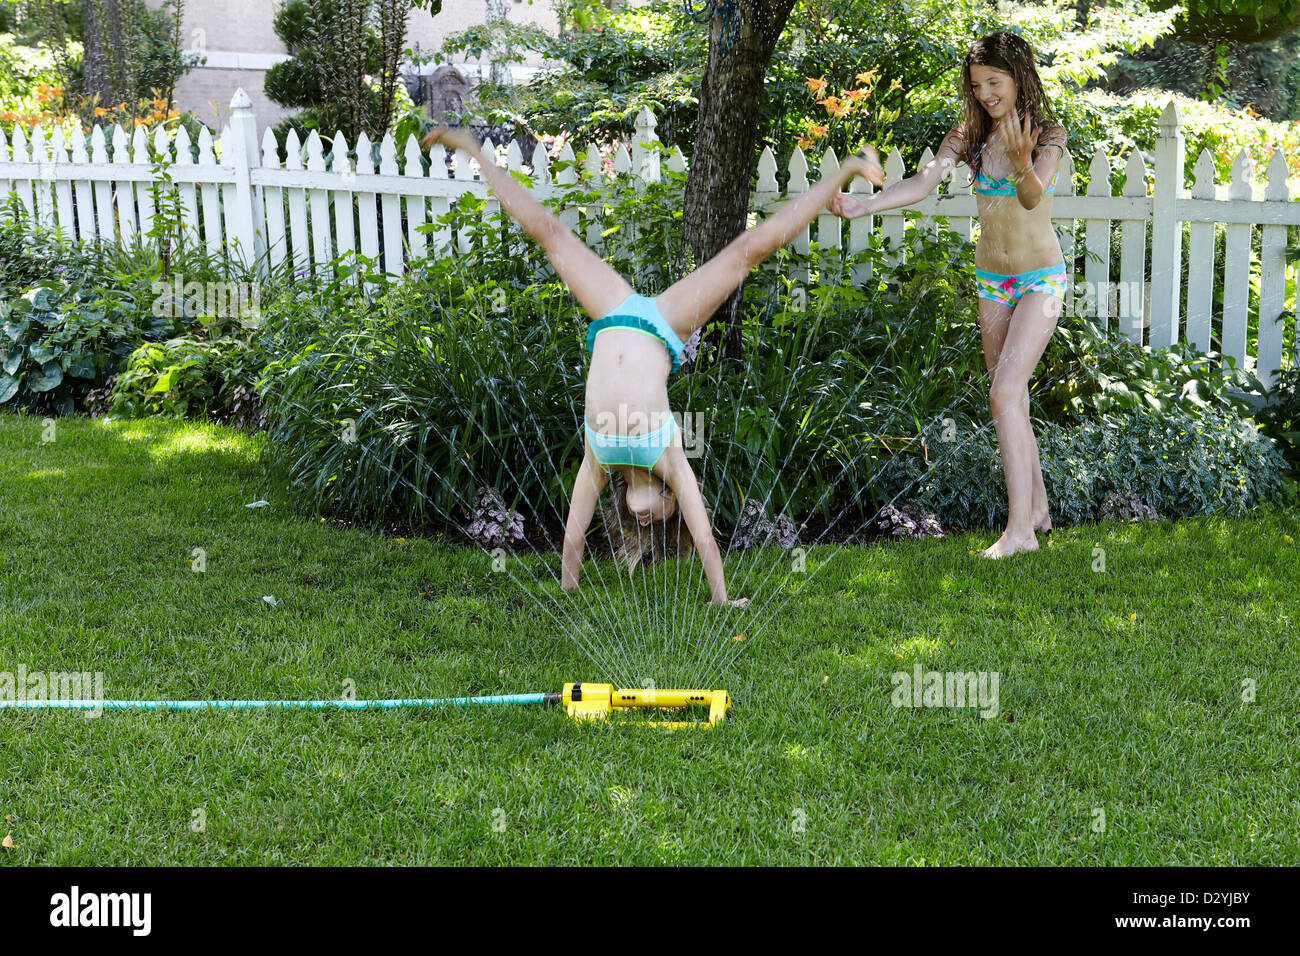 Sisters playing in water from sprinkler - Stock Image